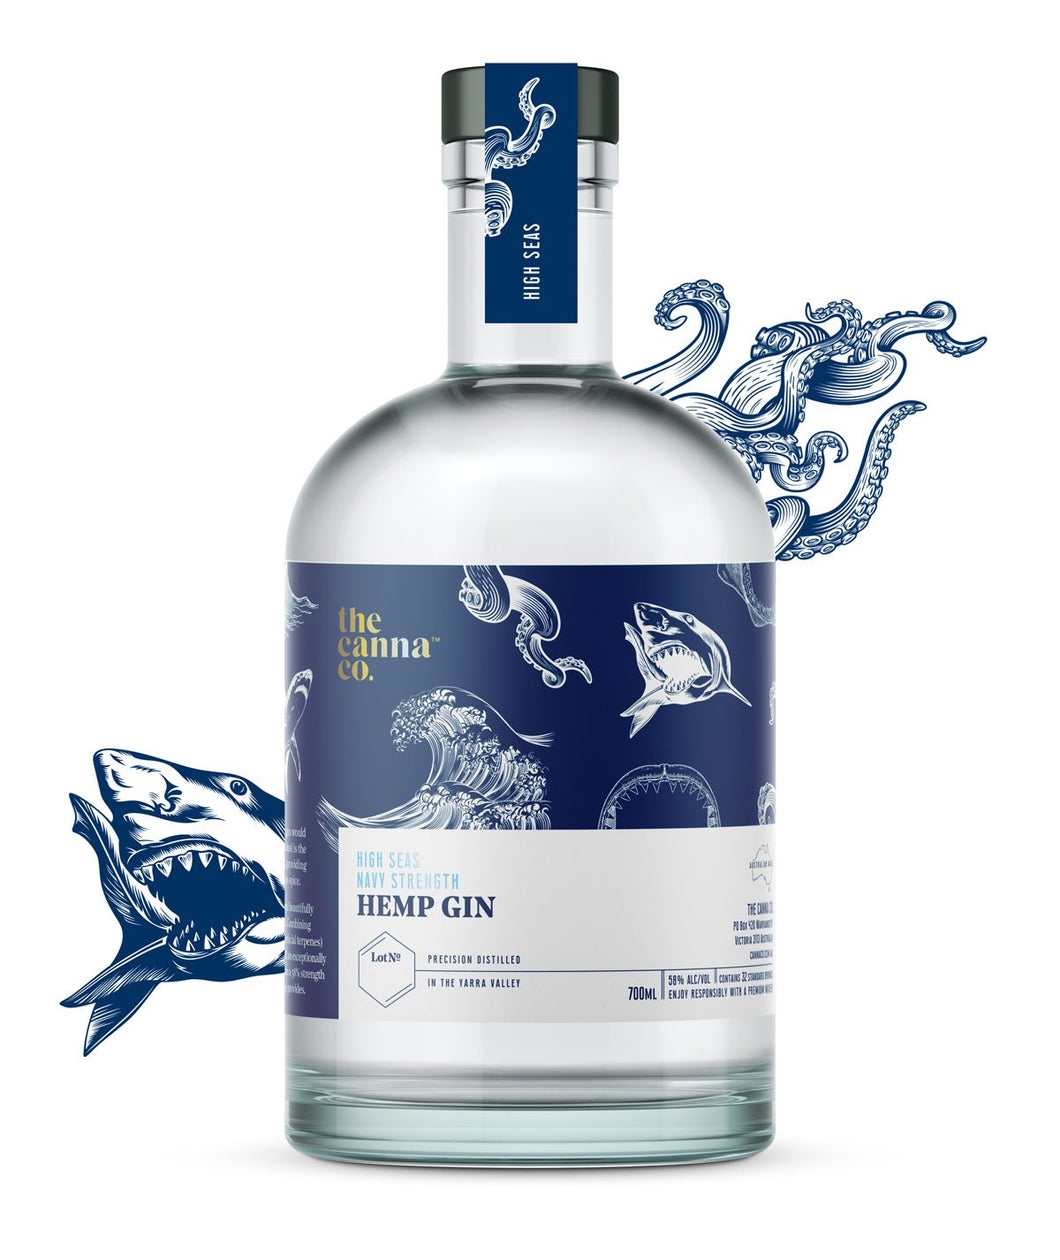 The Canna Co. High Seas Navy Strength Hemp Gin 700ml